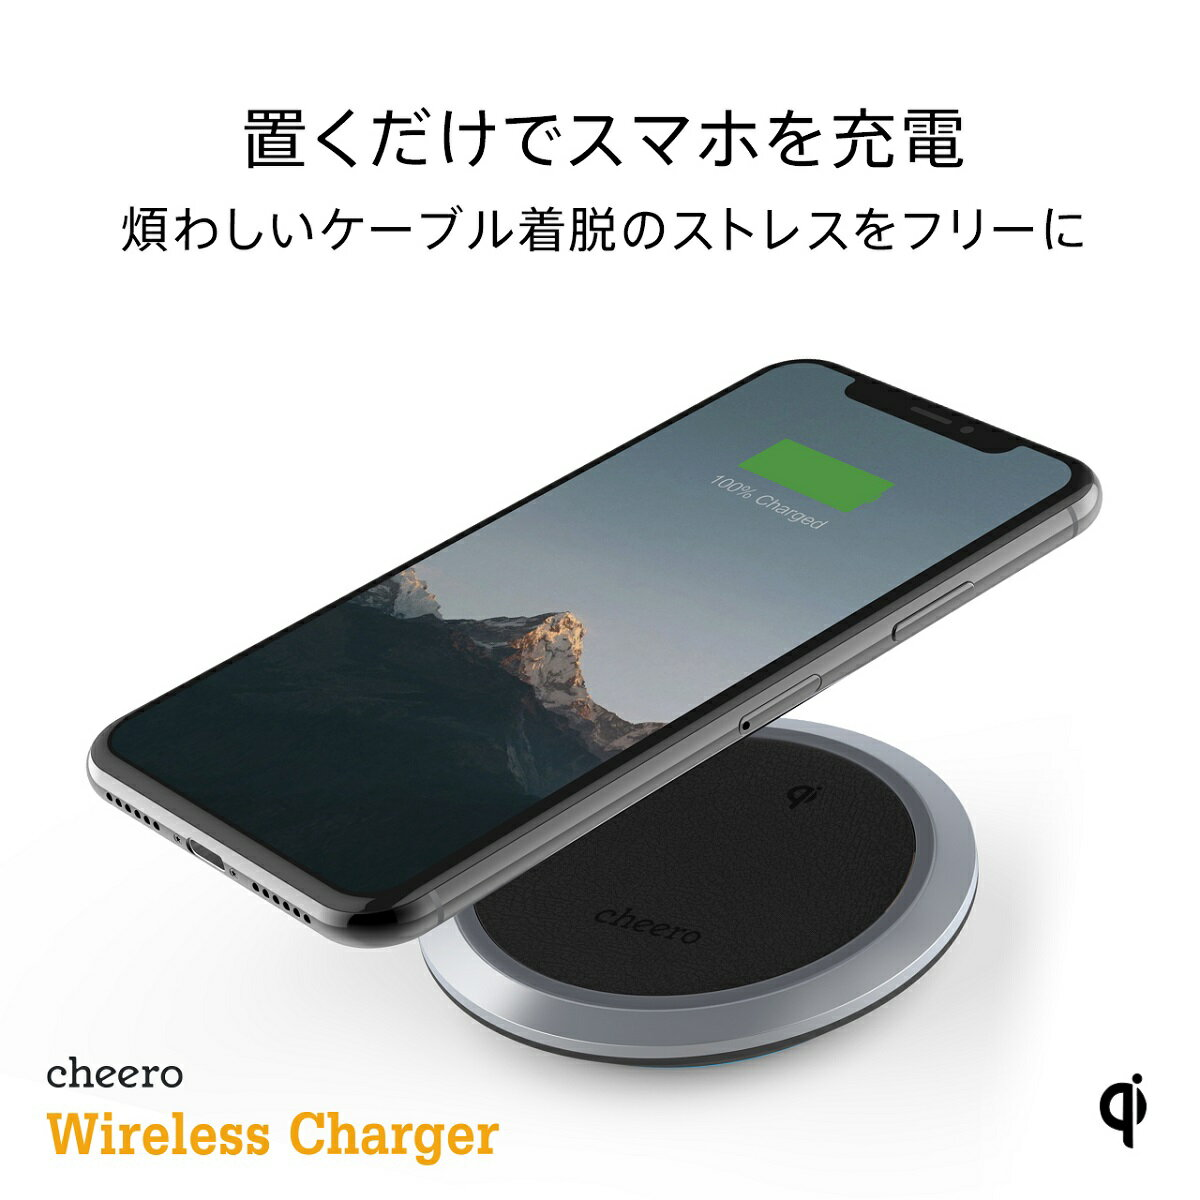 cheero Wireless Charger ( Qi認定 ワイヤレス充電器 ) 底面・表面滑り止め iPhone 8 / 8 Plus / X / Qi対応 Android